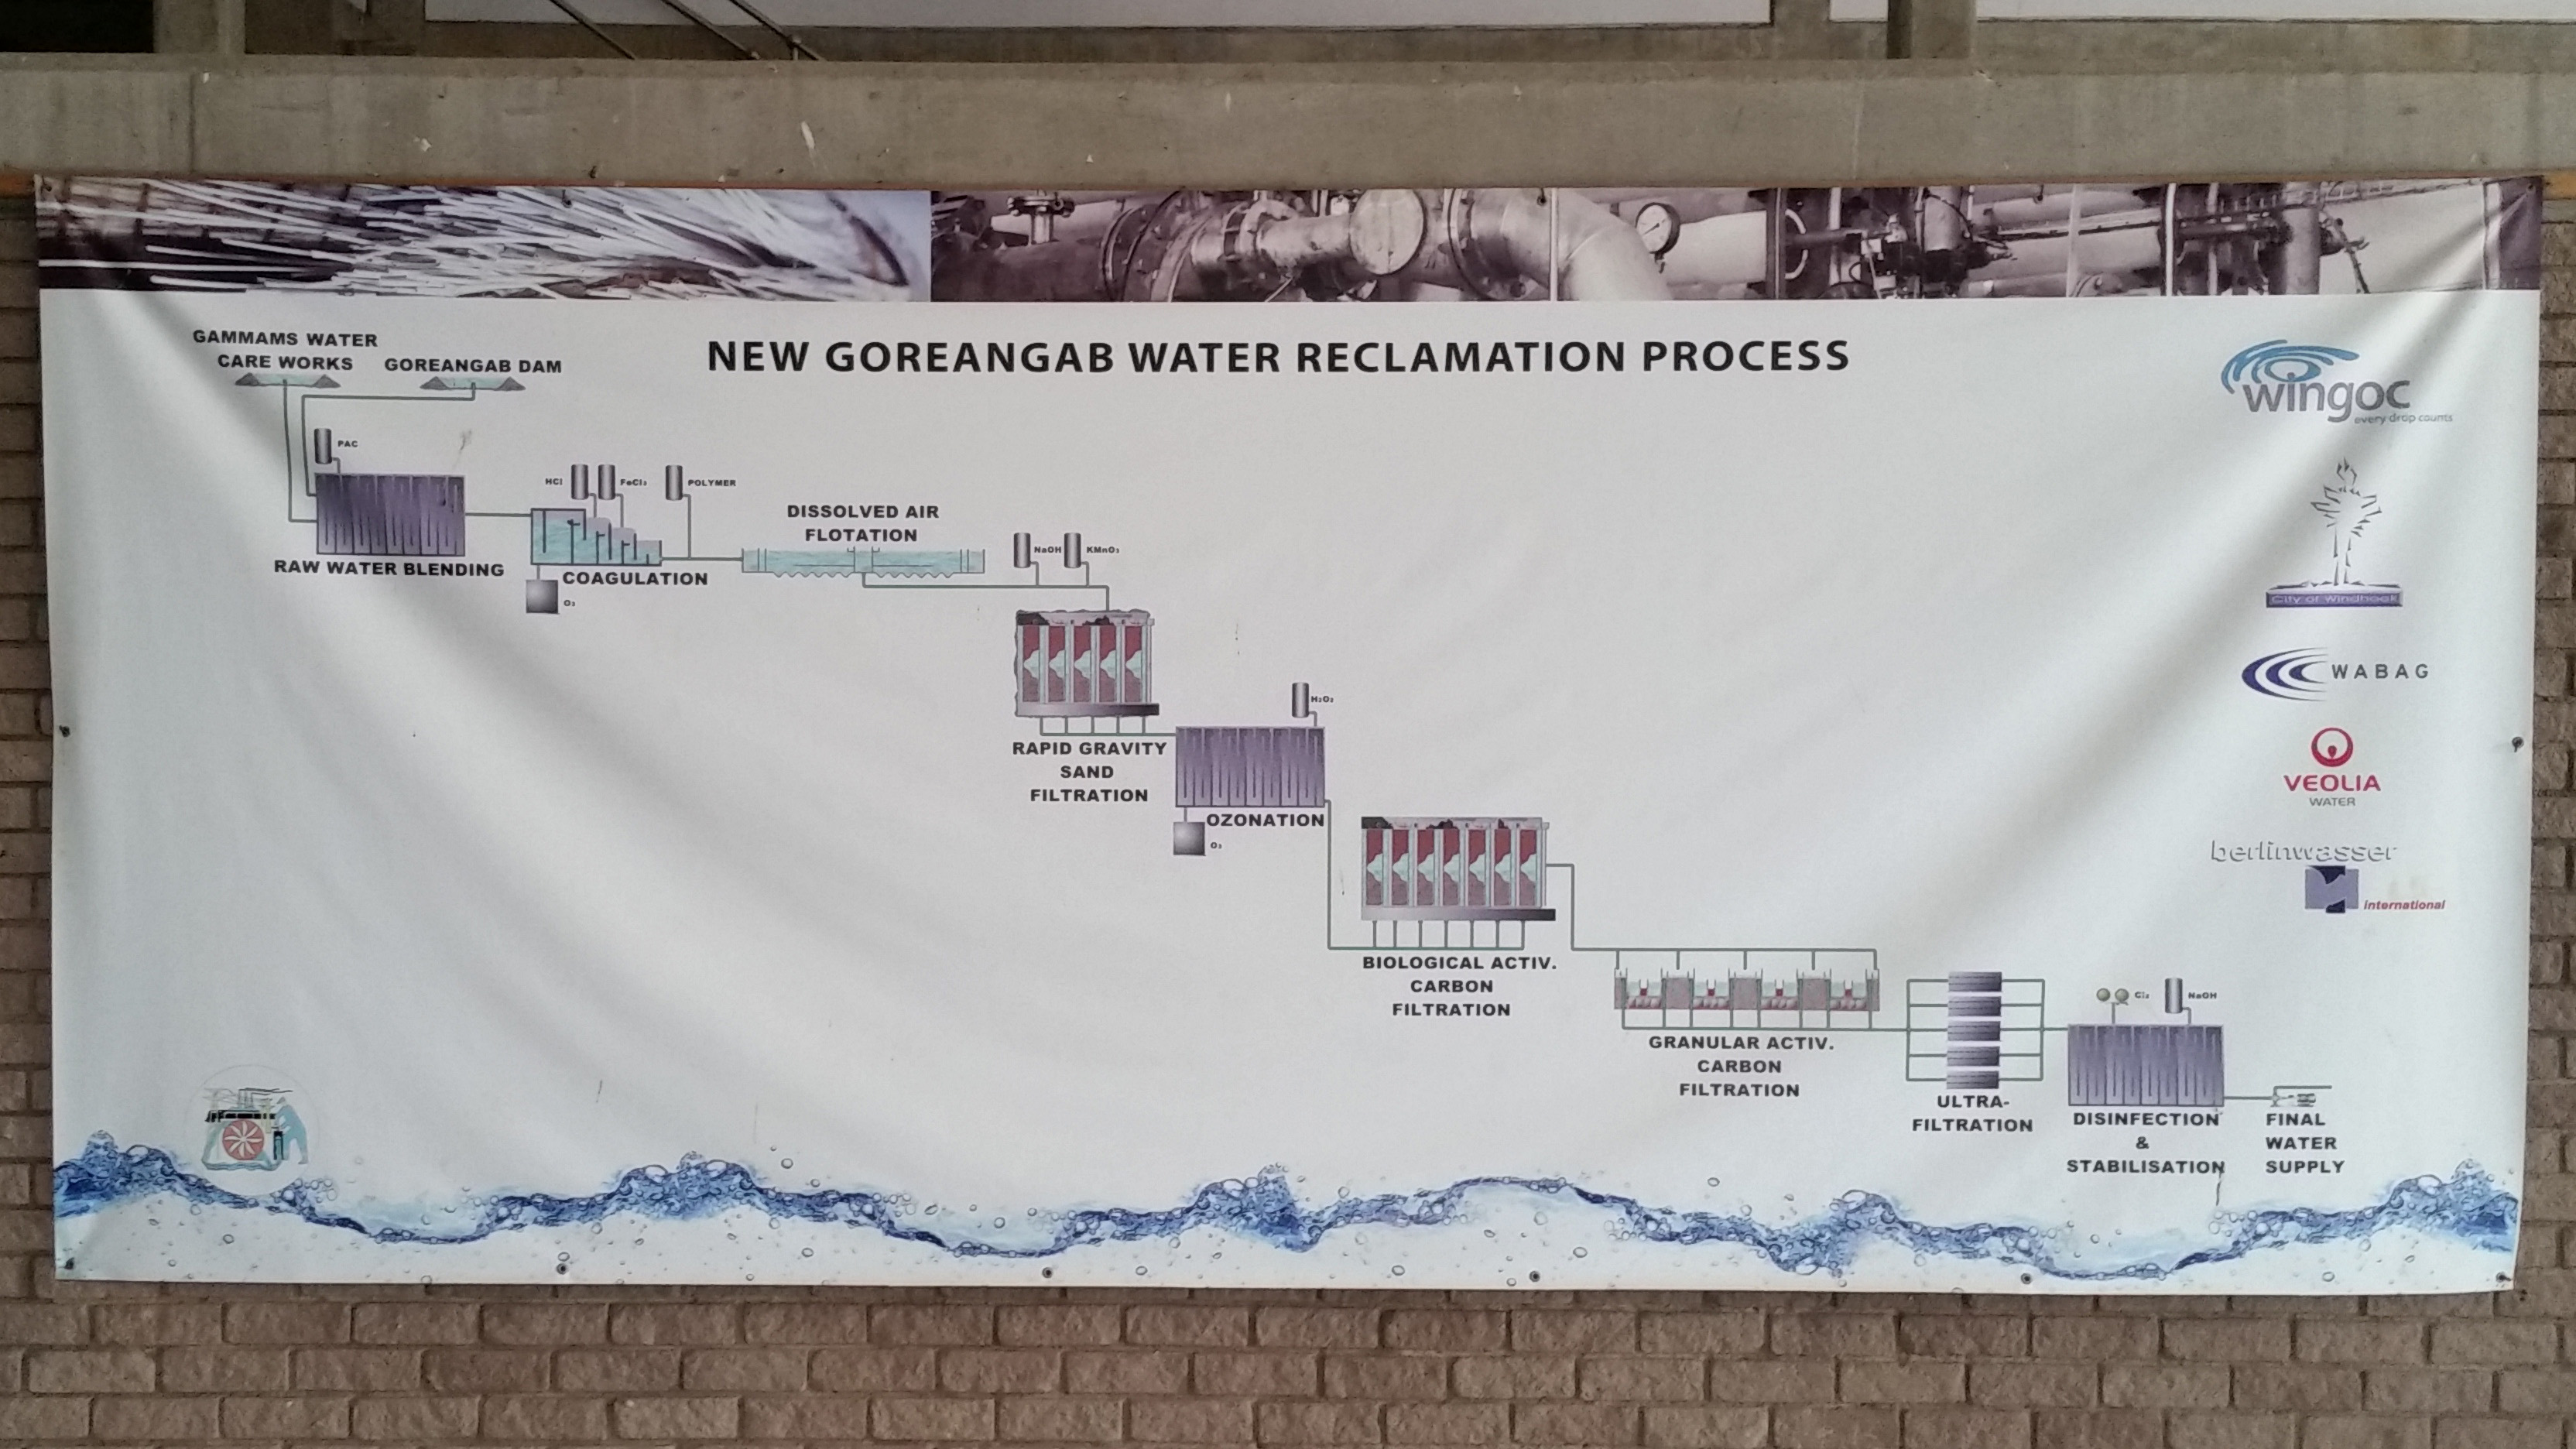 The Goreangab water treatment plant uses a process that partially mimics nature to turn sewage from Winhoek's 300,000 residents back into potable water. It opened in 1968 and was the first such plant in the world.